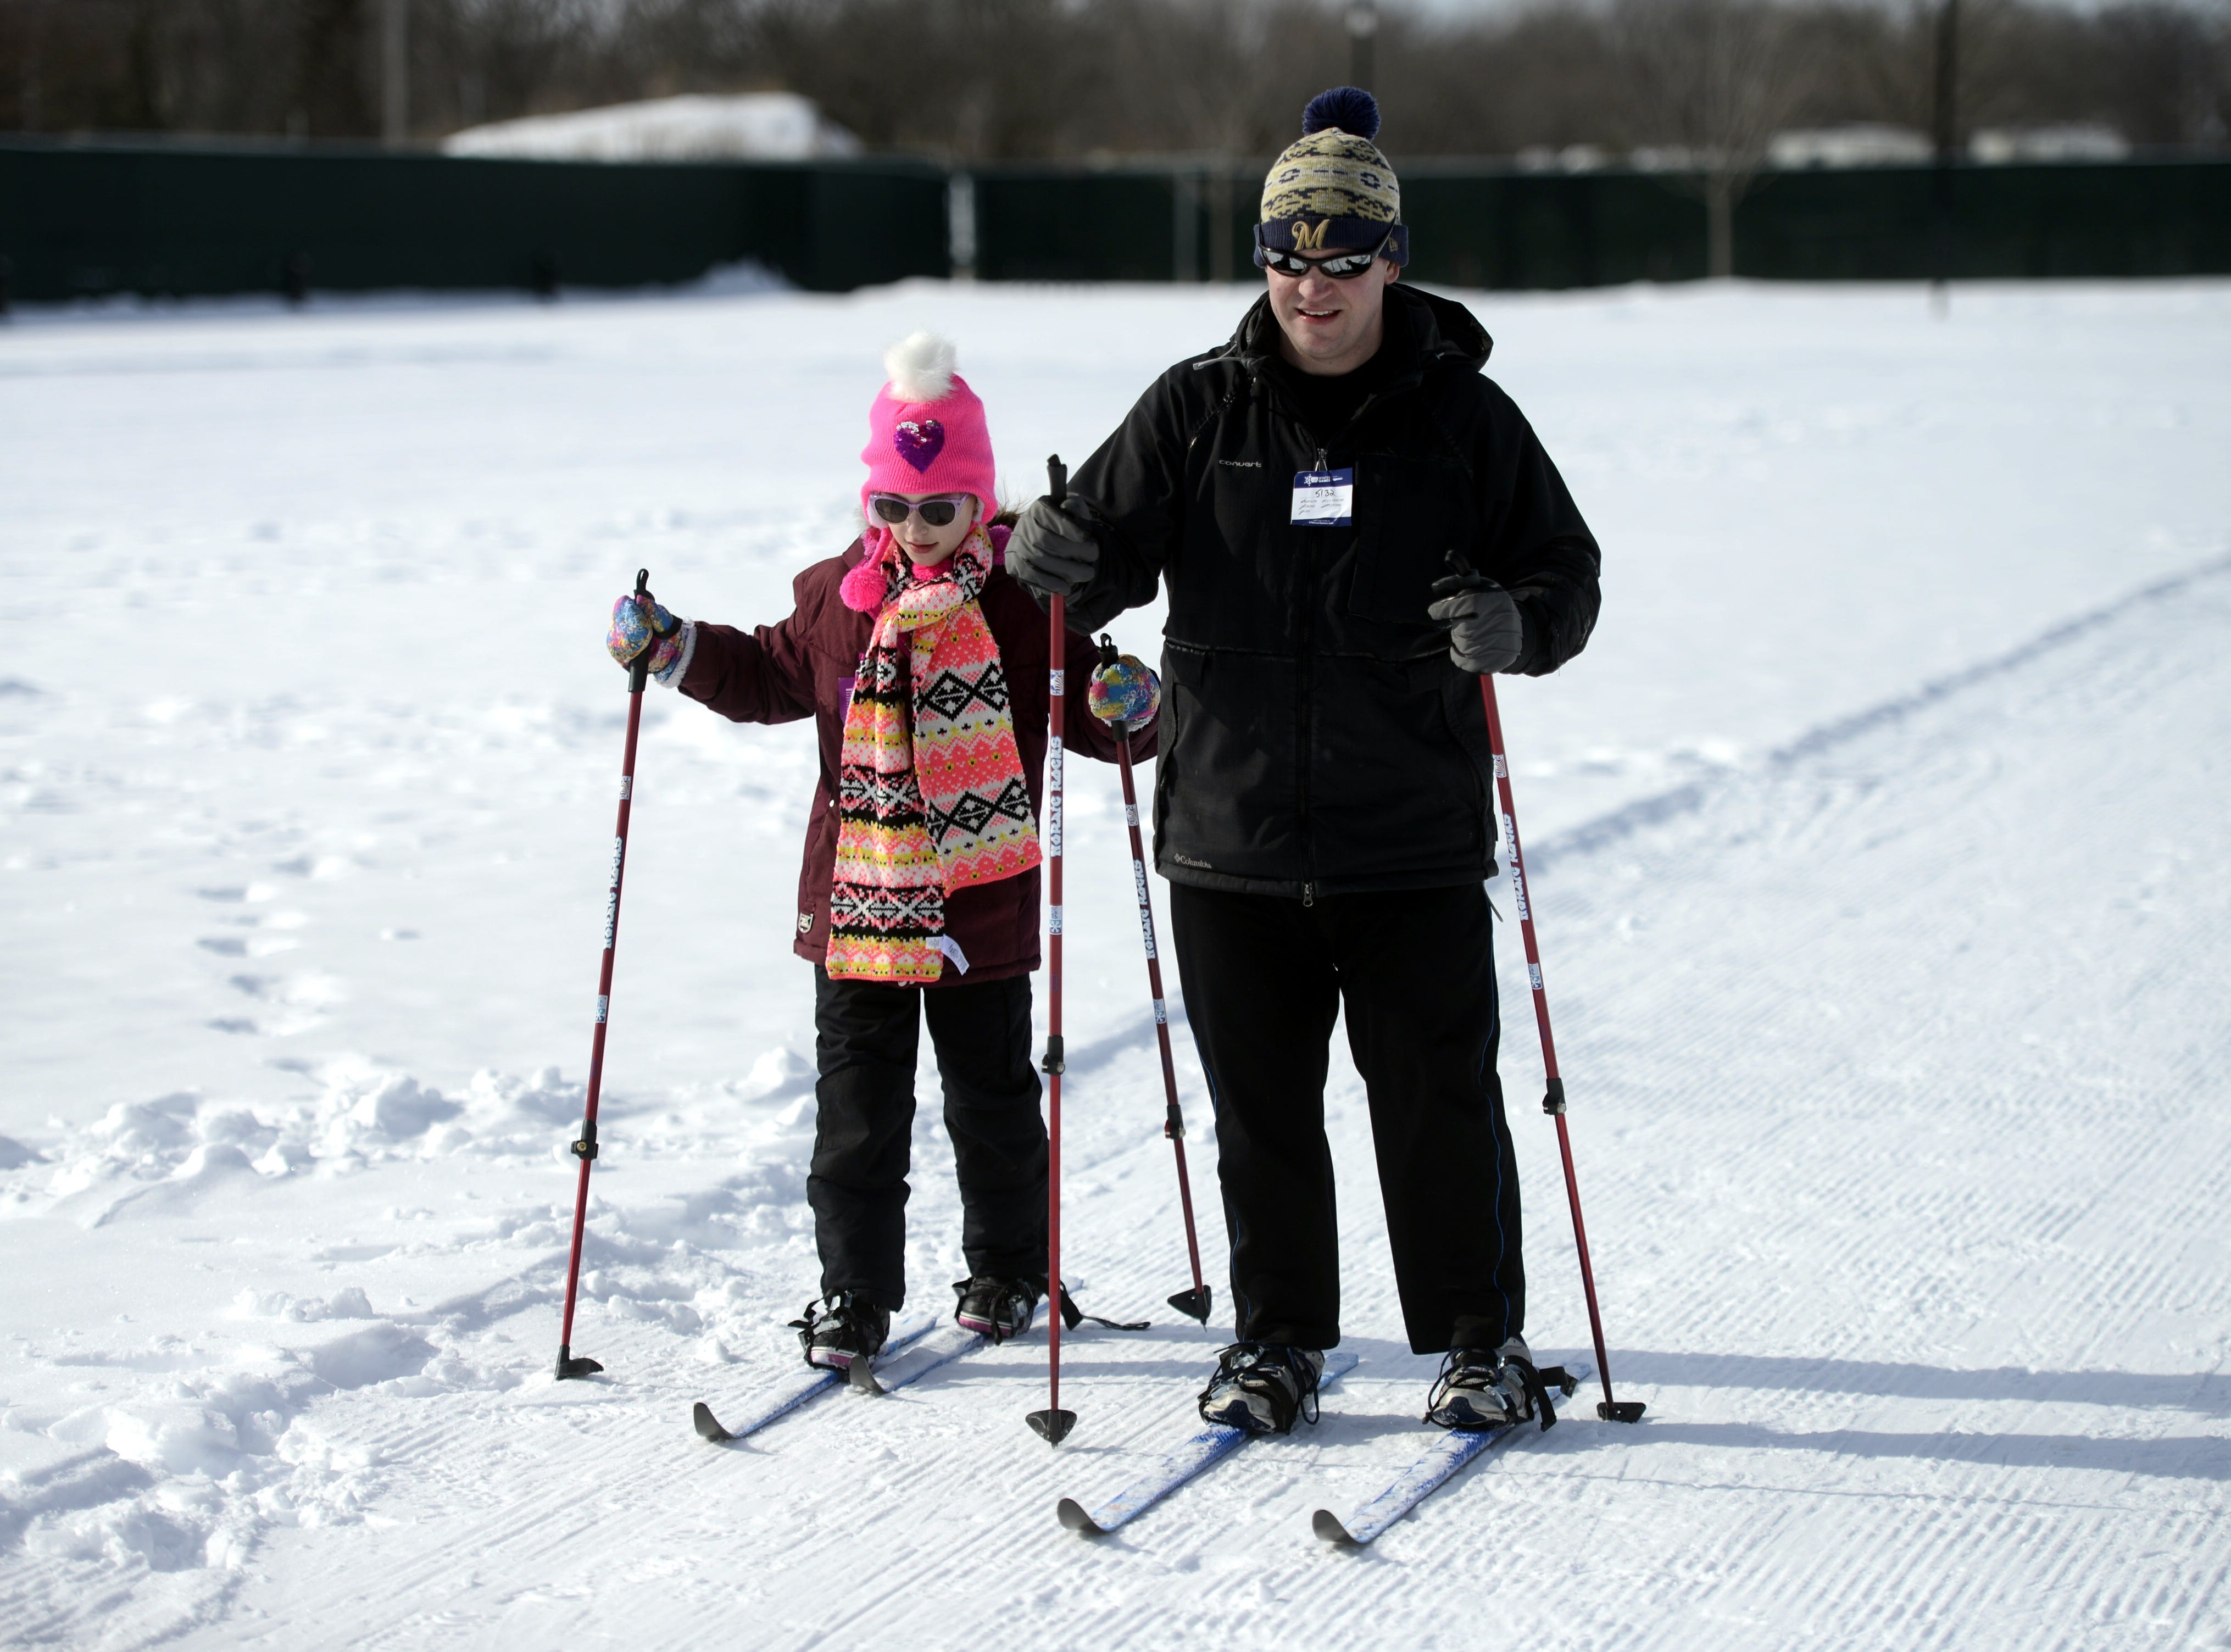 Rich Palzewic and daughter Francesca, 9, of Howard cross country ski at the Titletown Winter Games on Saturday, Feb. 16, 2019.